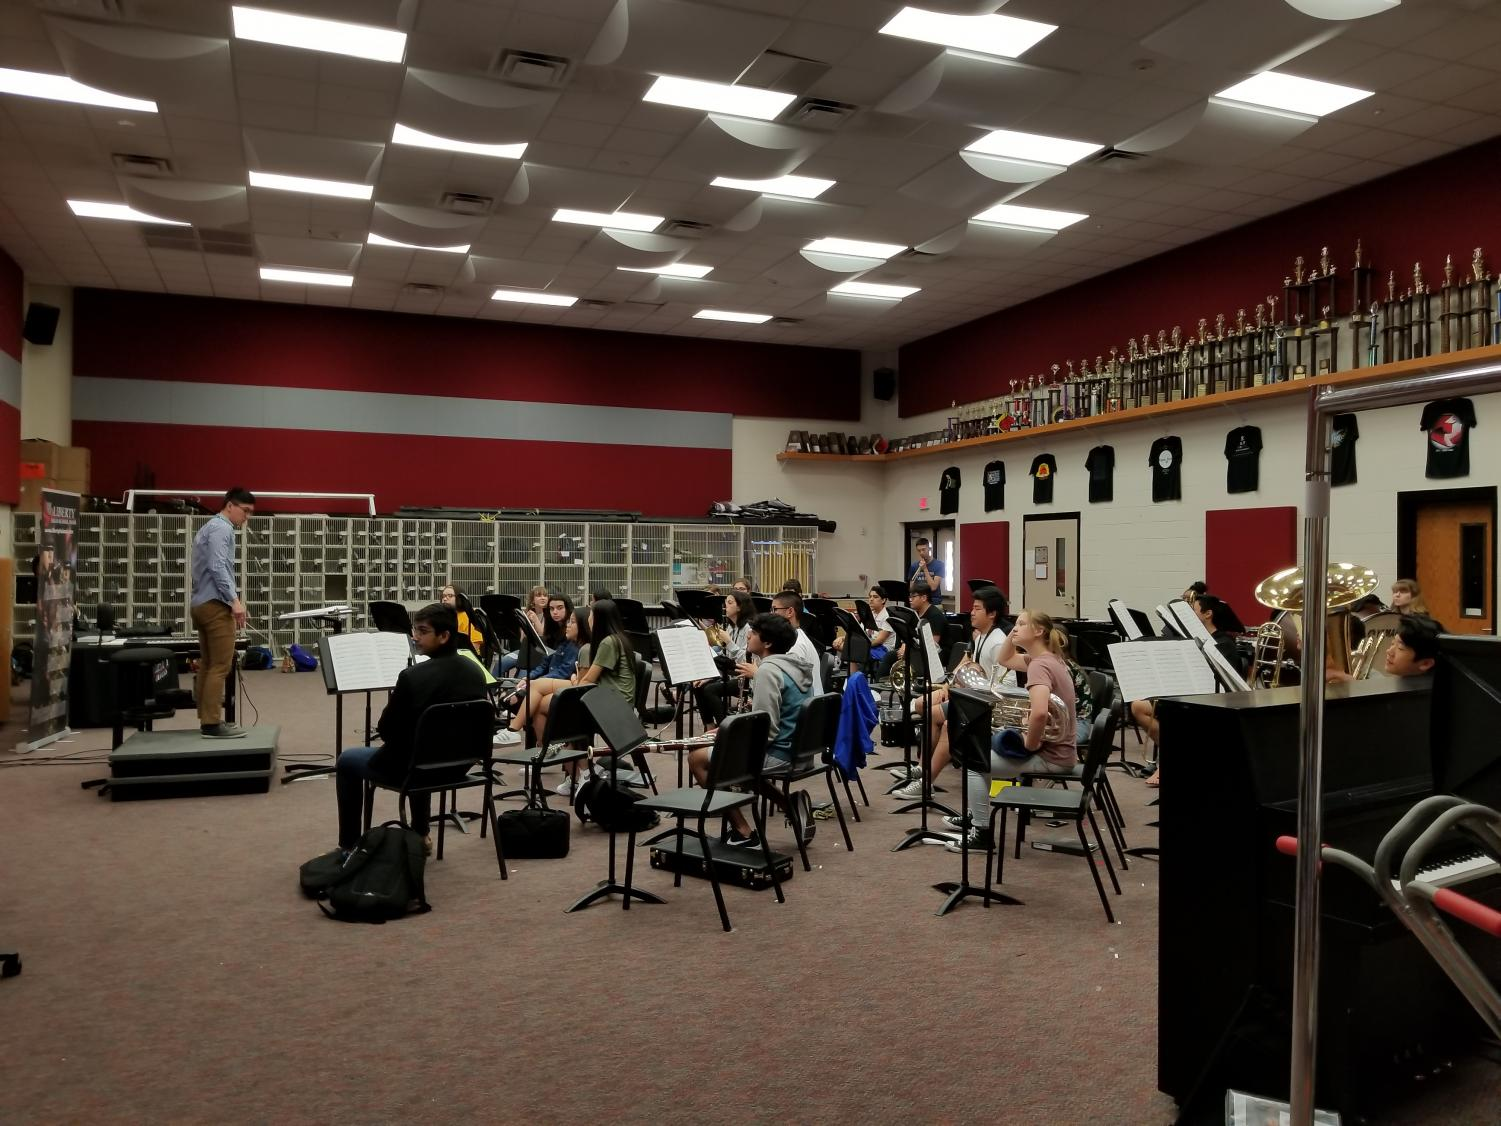 Band students rehearse for their final concert scheduled into two weeks. Last week band students worked with incoming eighth graders to give them an insight into daily work of band students.